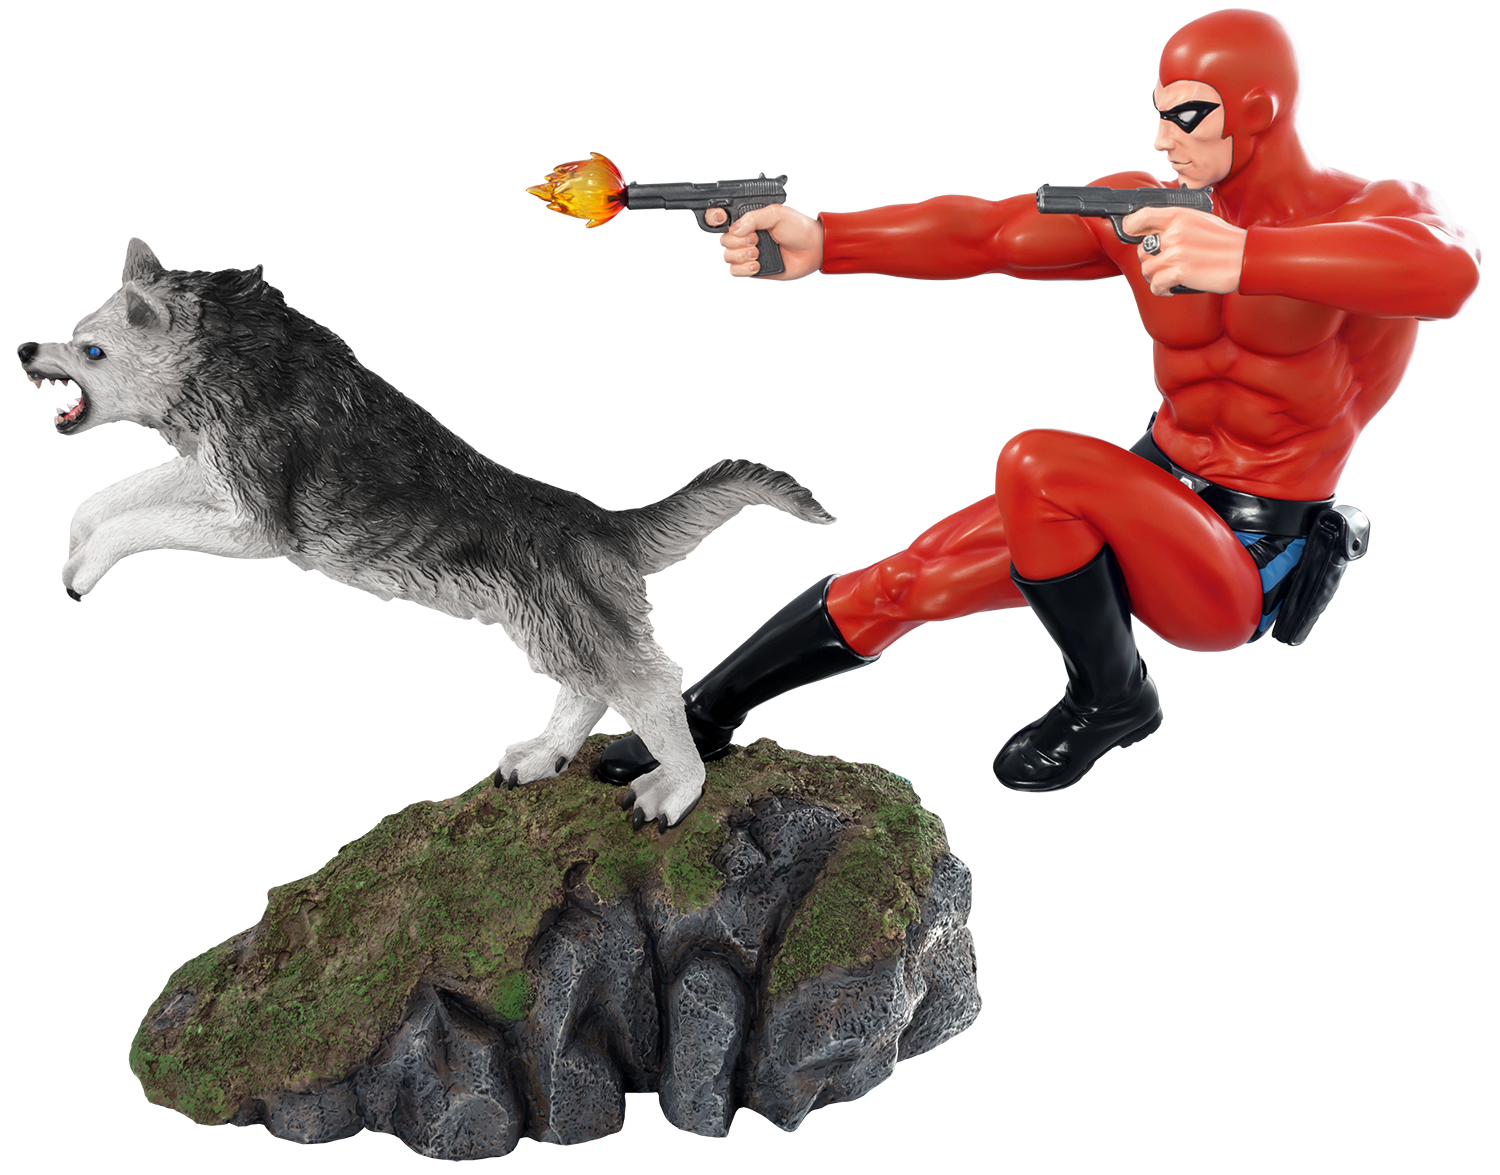 IKO1227-Phantom-with-Devil-Statue--VARIANTS-Red.png